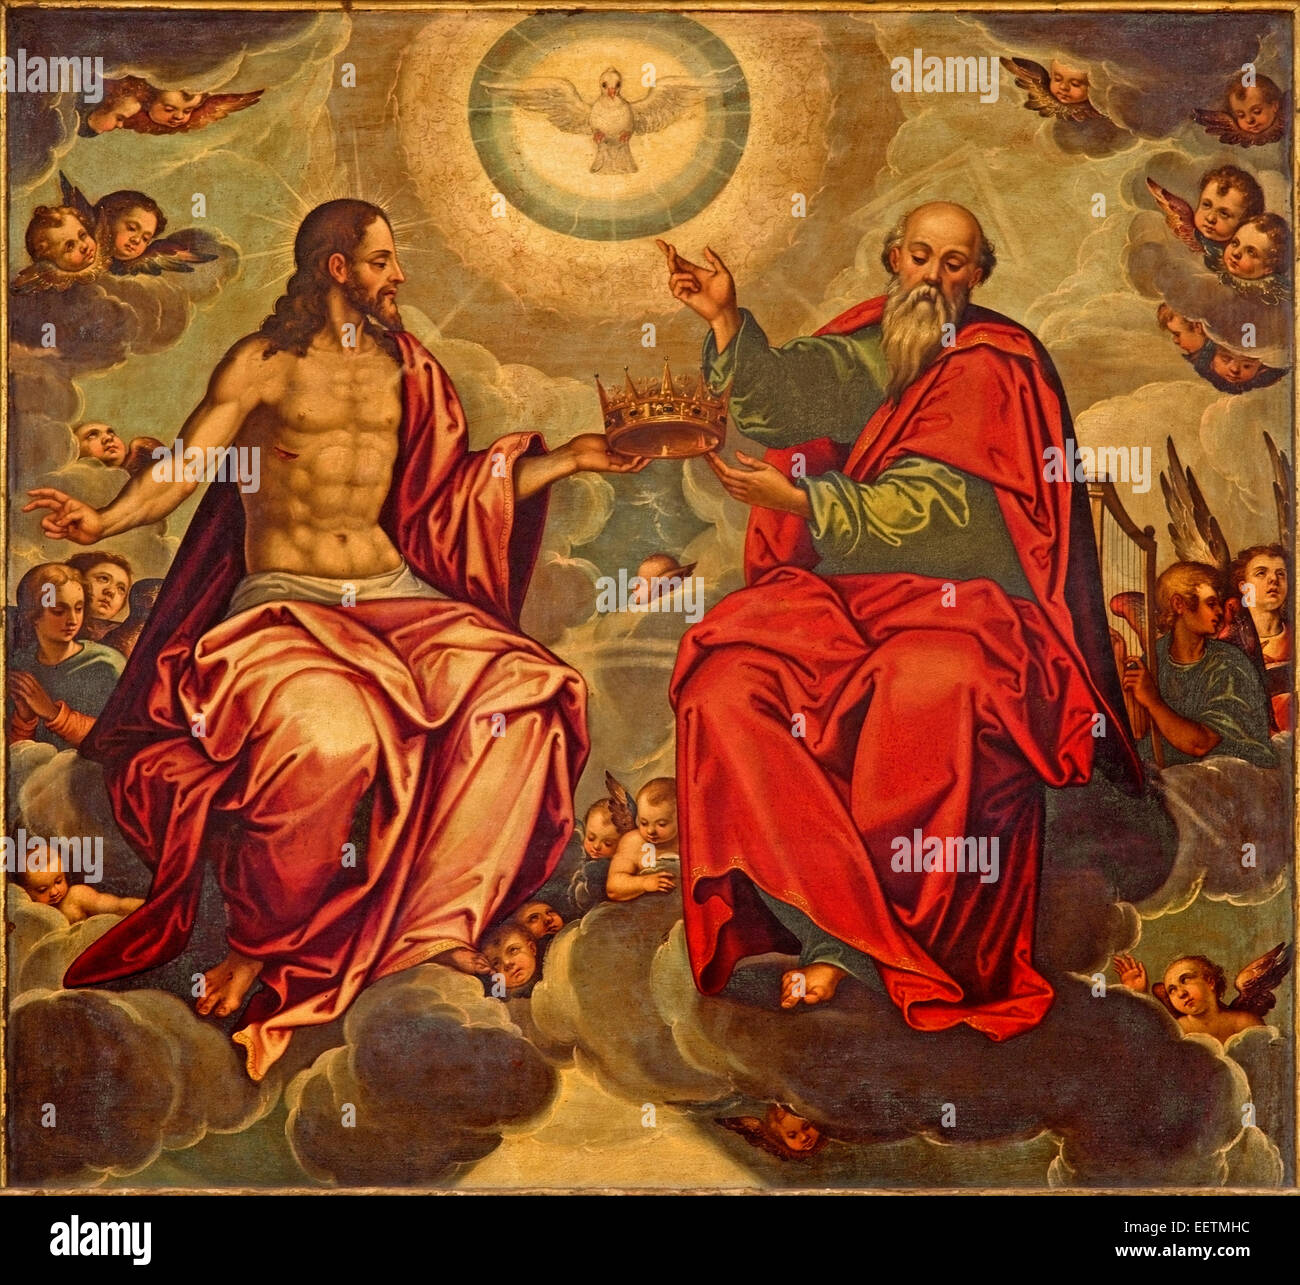 Seville - Holy Trinity paint in church Iglesia de la Anunciacion by Marcelo Coffermans (1560) in renaissance style. - Stock Image